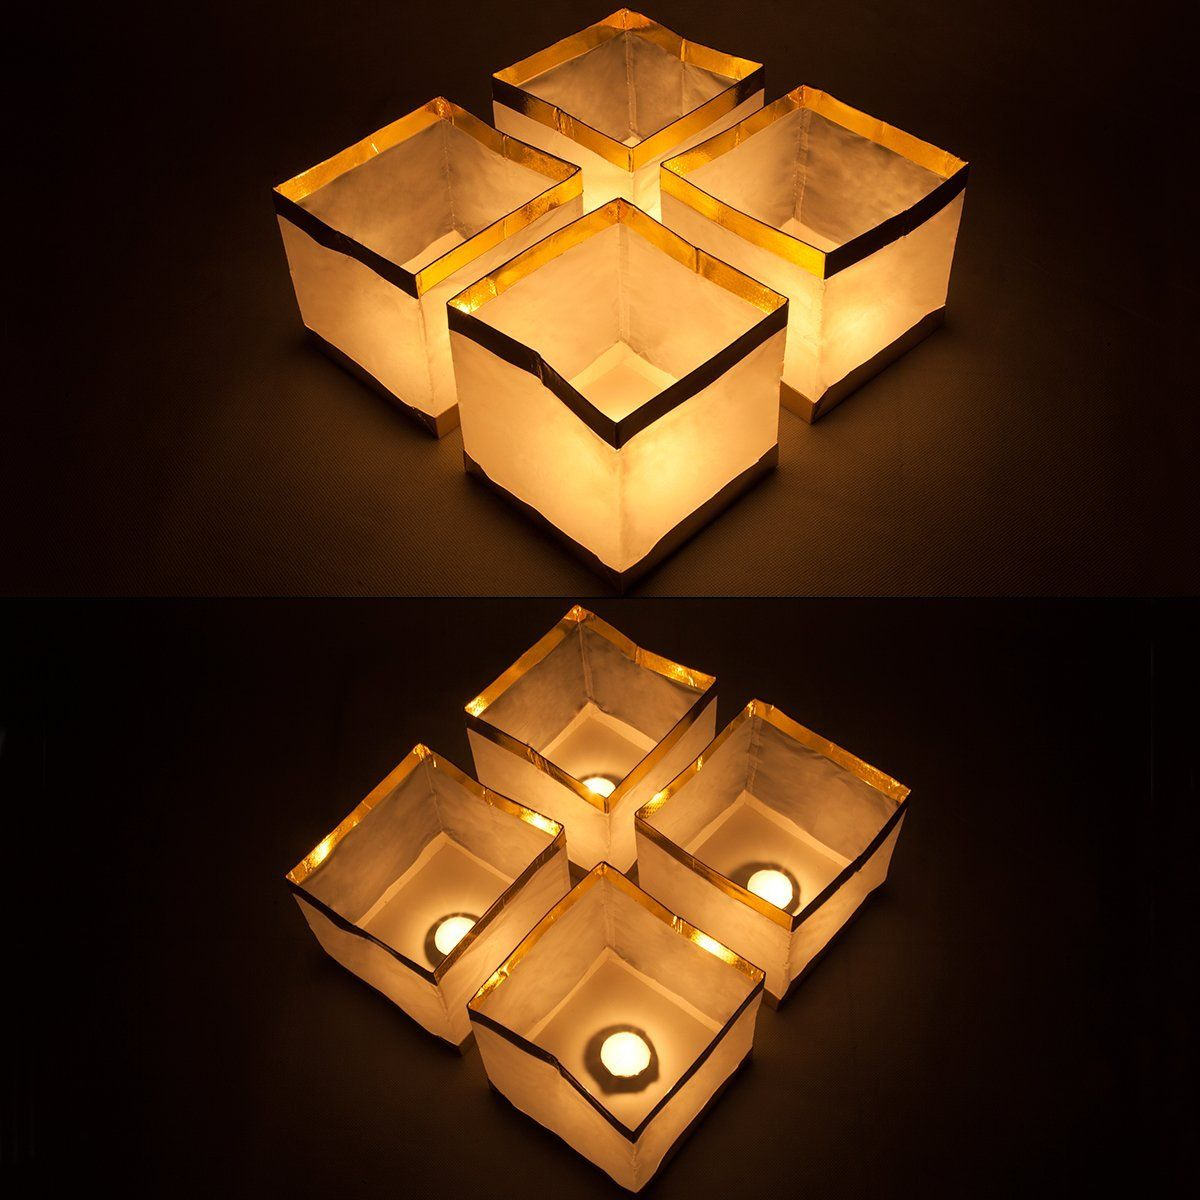 Pack Of 20 Water Floating Candle Lanterns Outdoor Biodegradable Lanterns For Praying 5 9 Inch Candle Lanterns Biodegradable Products Floating Candles